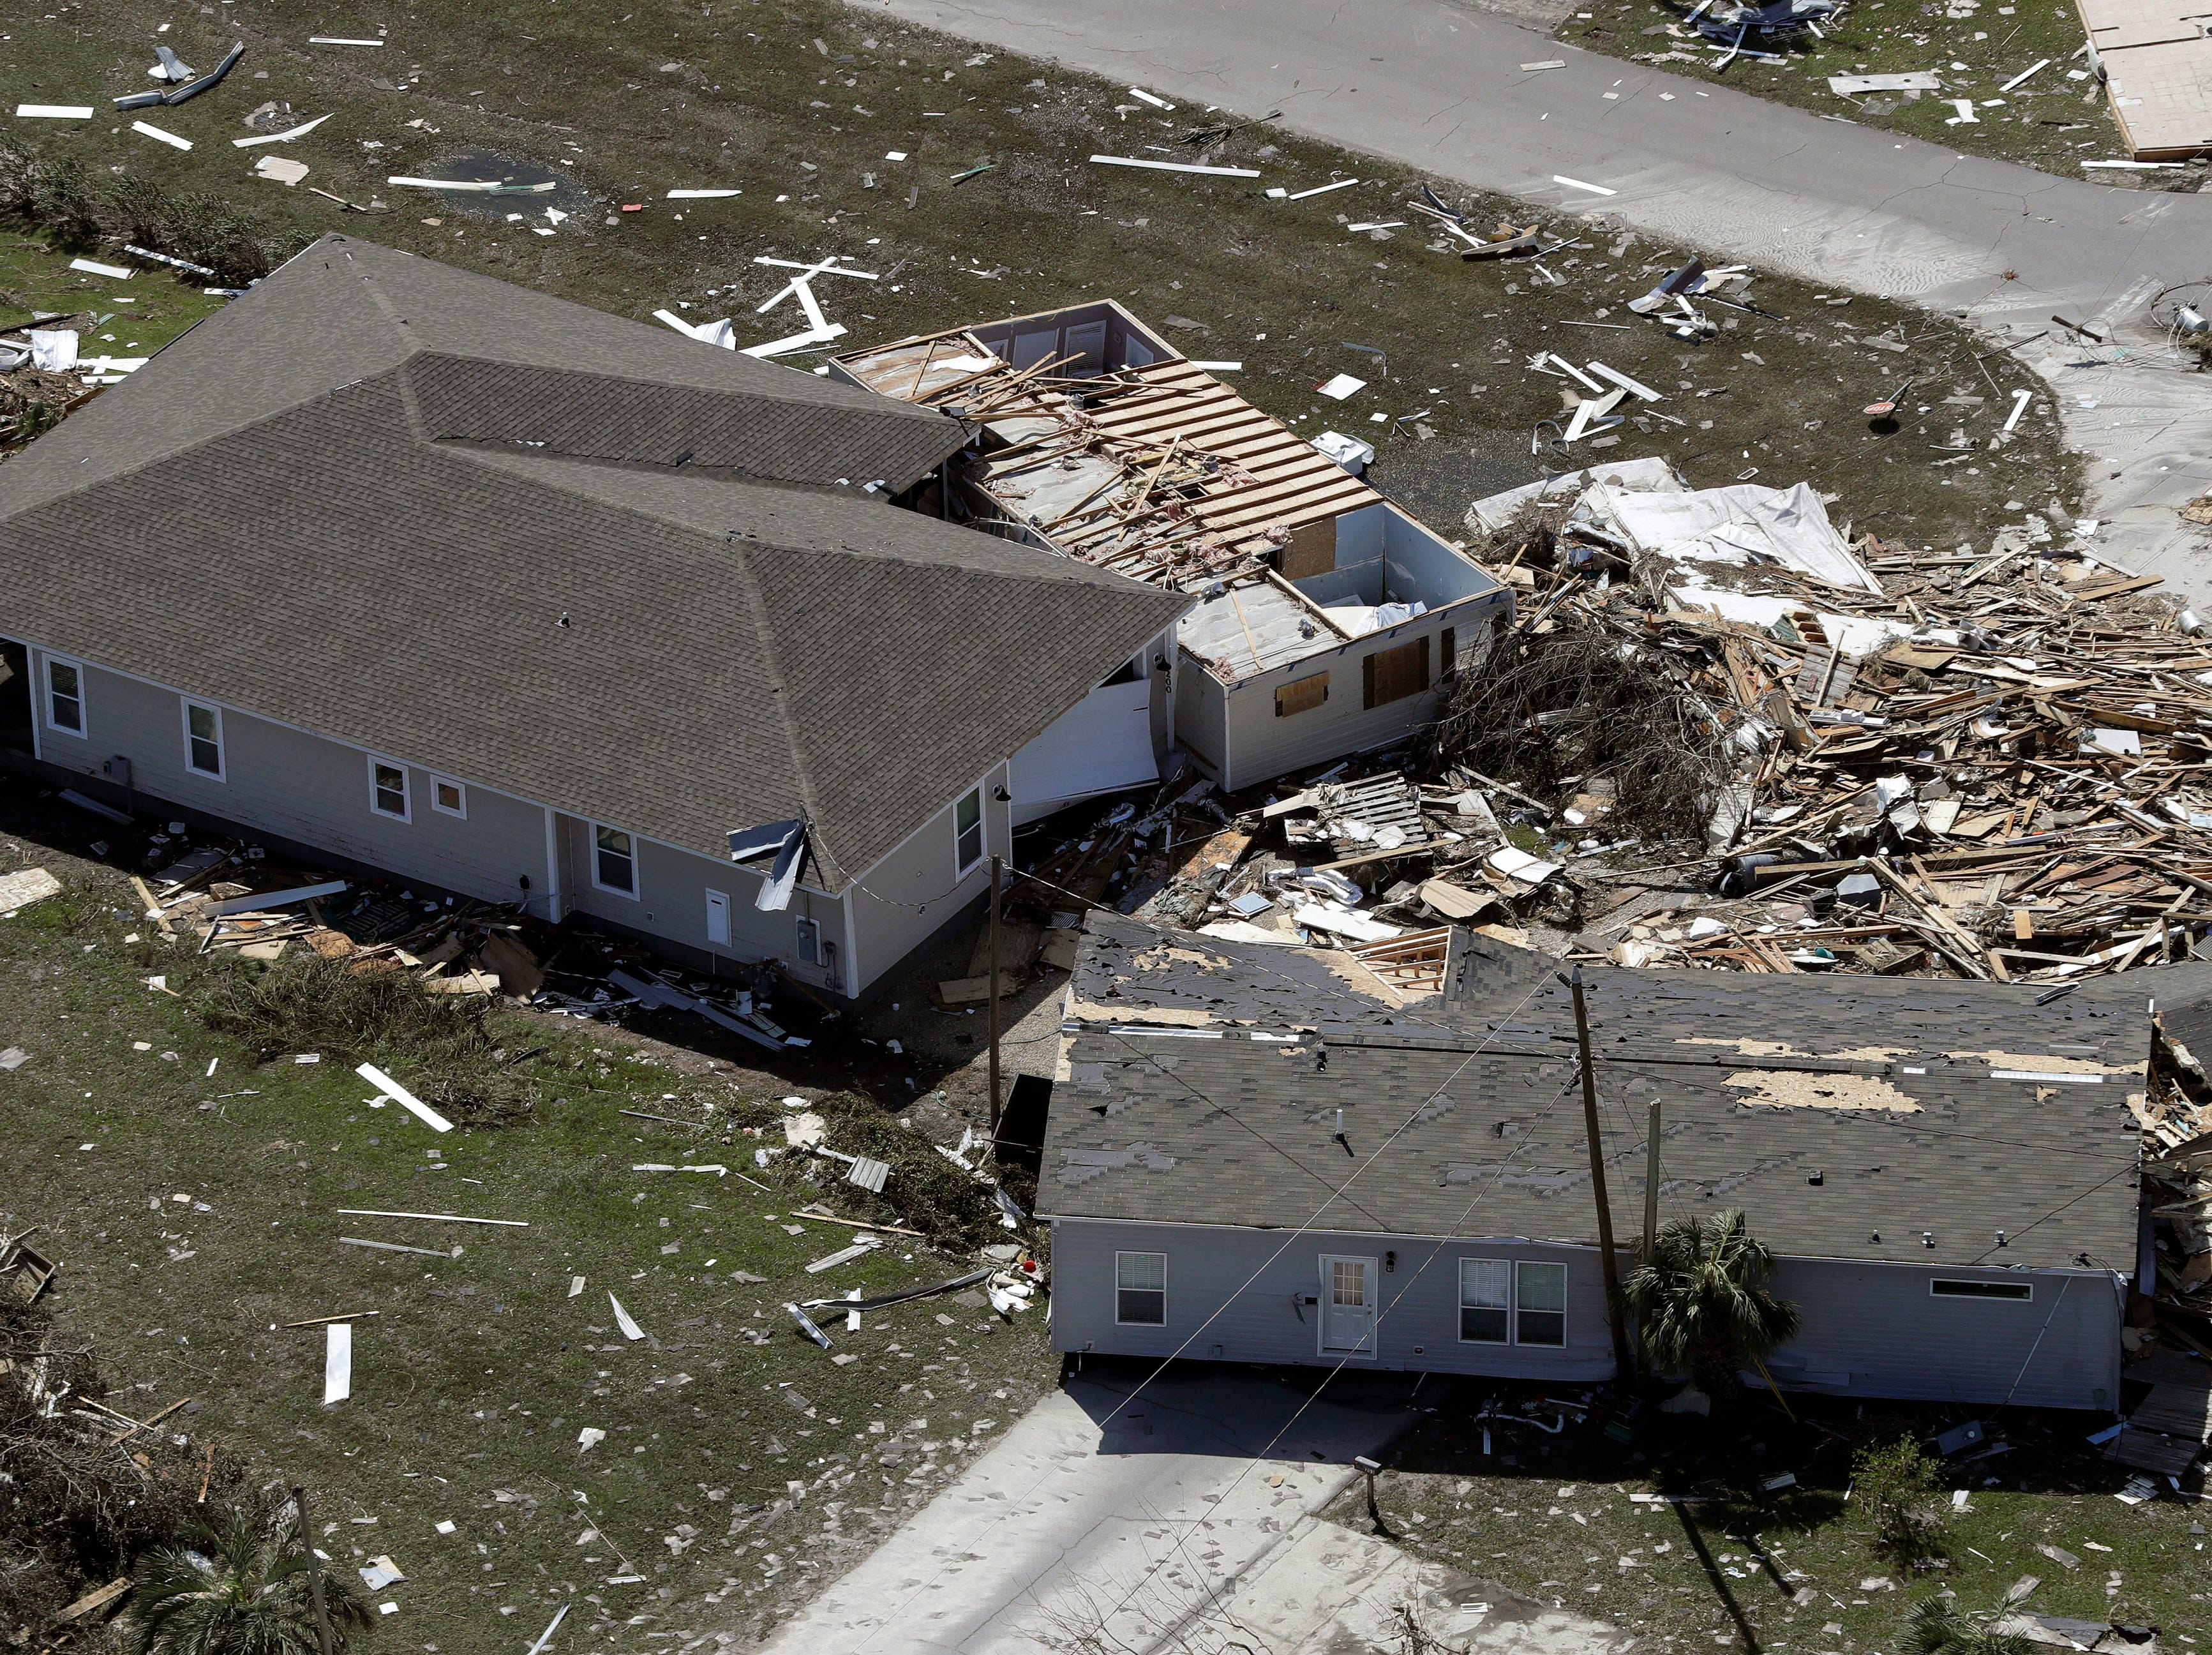 Debris from homes destroyed by Hurricane Michael litters the ground Thursday, Oct. 11, 2018, in Mexico Beach, Fla.